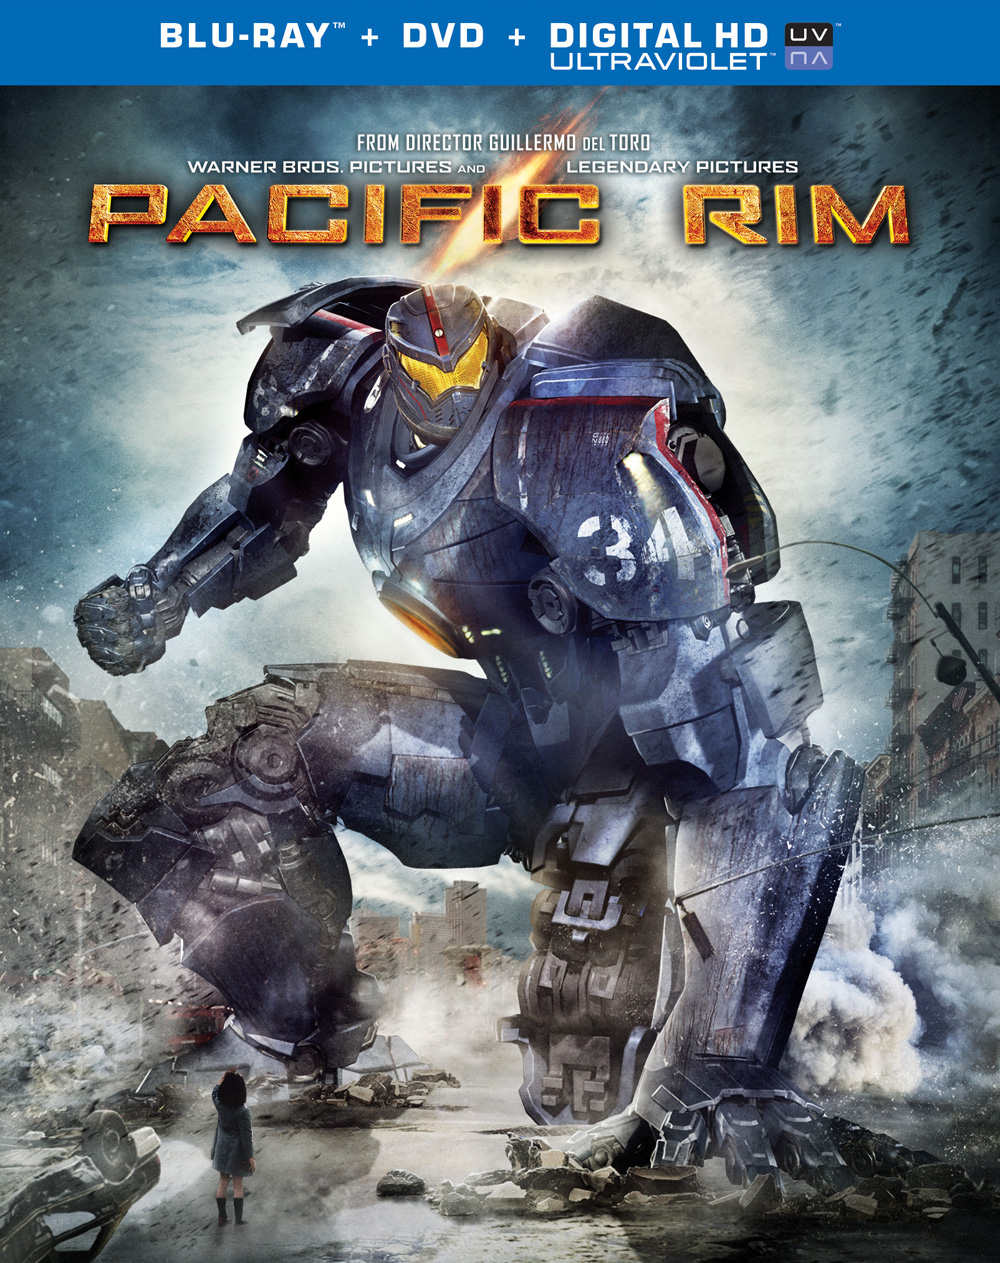 [Blu-Ray Review] 'Pacific Rim' is absolutely amazing, the ... Pacific Rim 2013